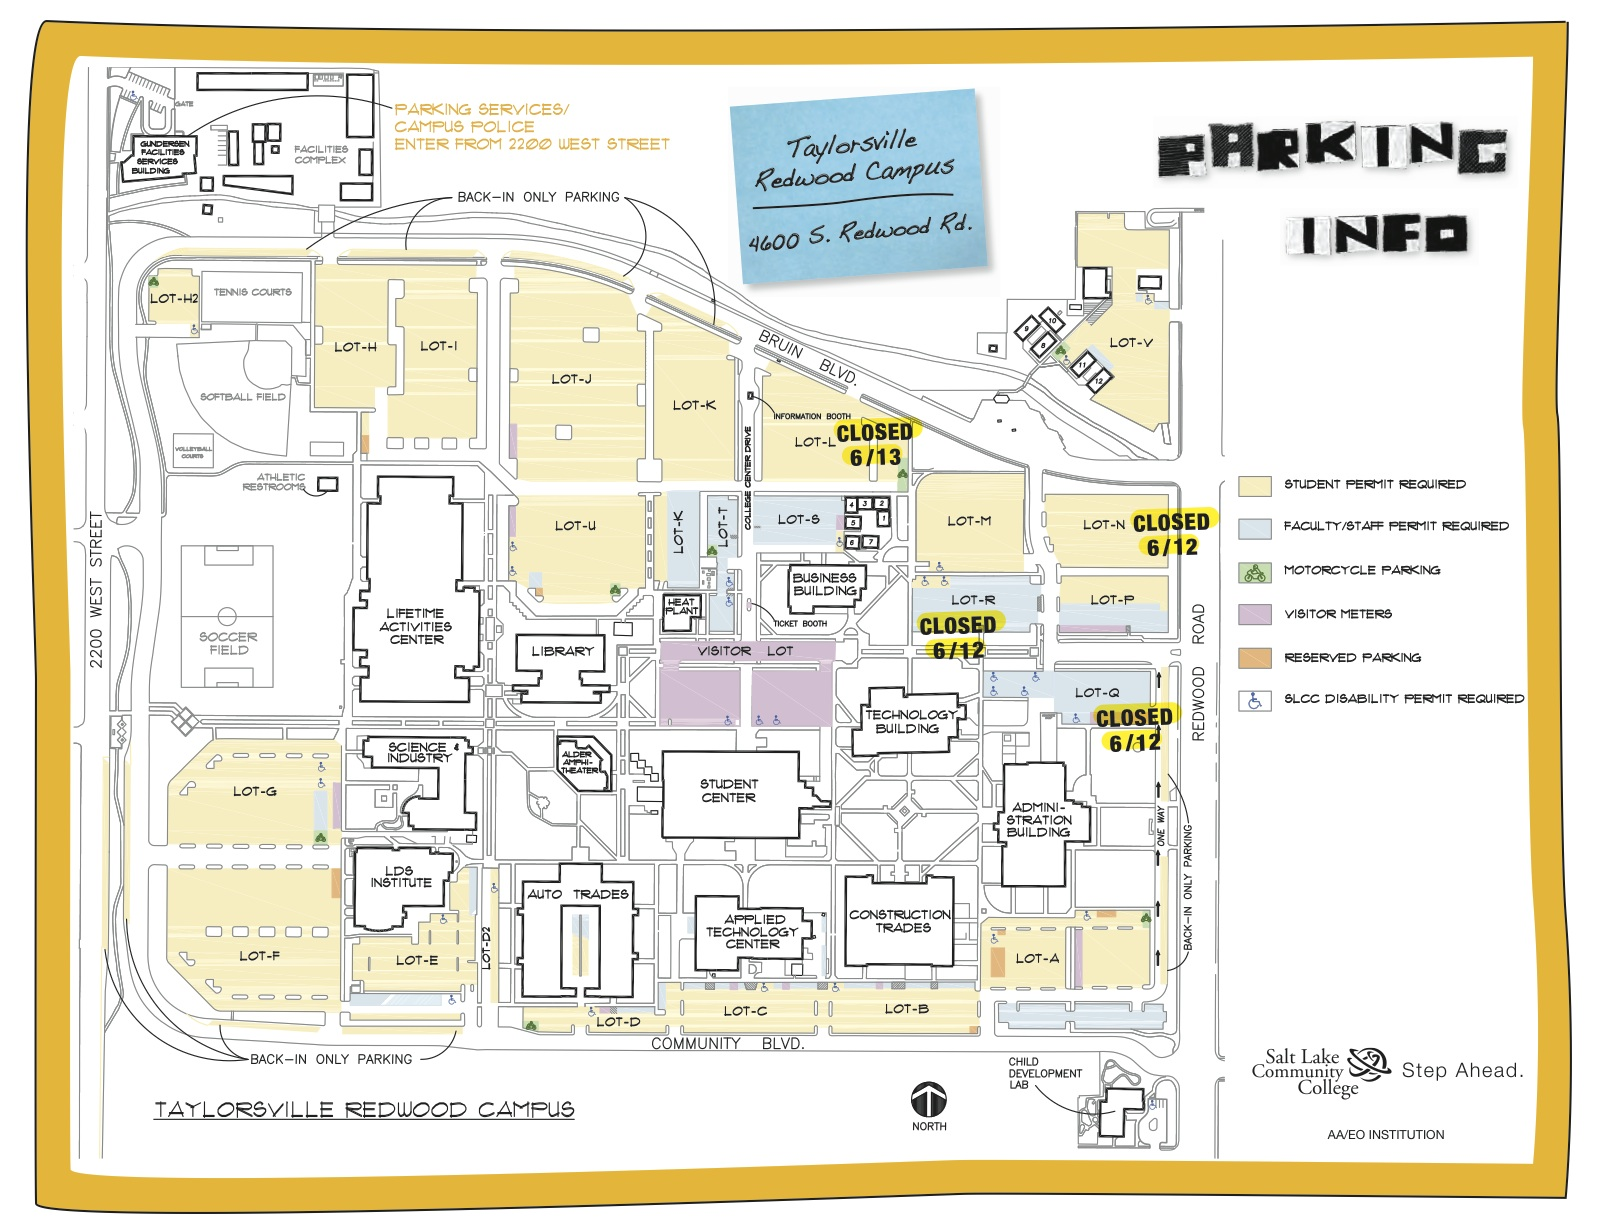 Slcc Campus Map The Fountain   The Official SLCC Blog: Brief Summer Parking Closures Slcc Campus Map